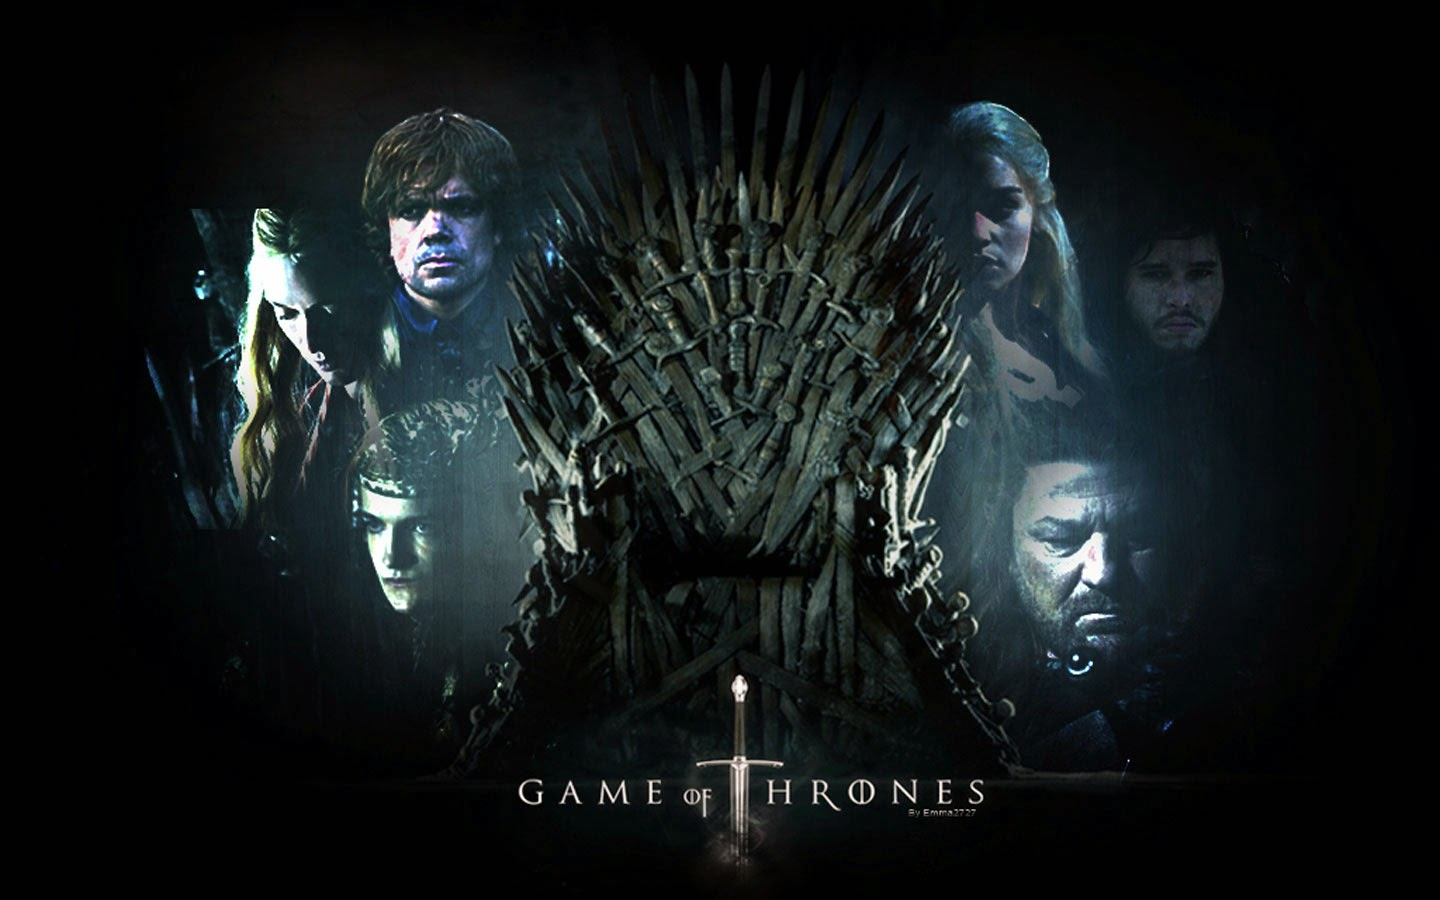 game of thrones s02e06 download